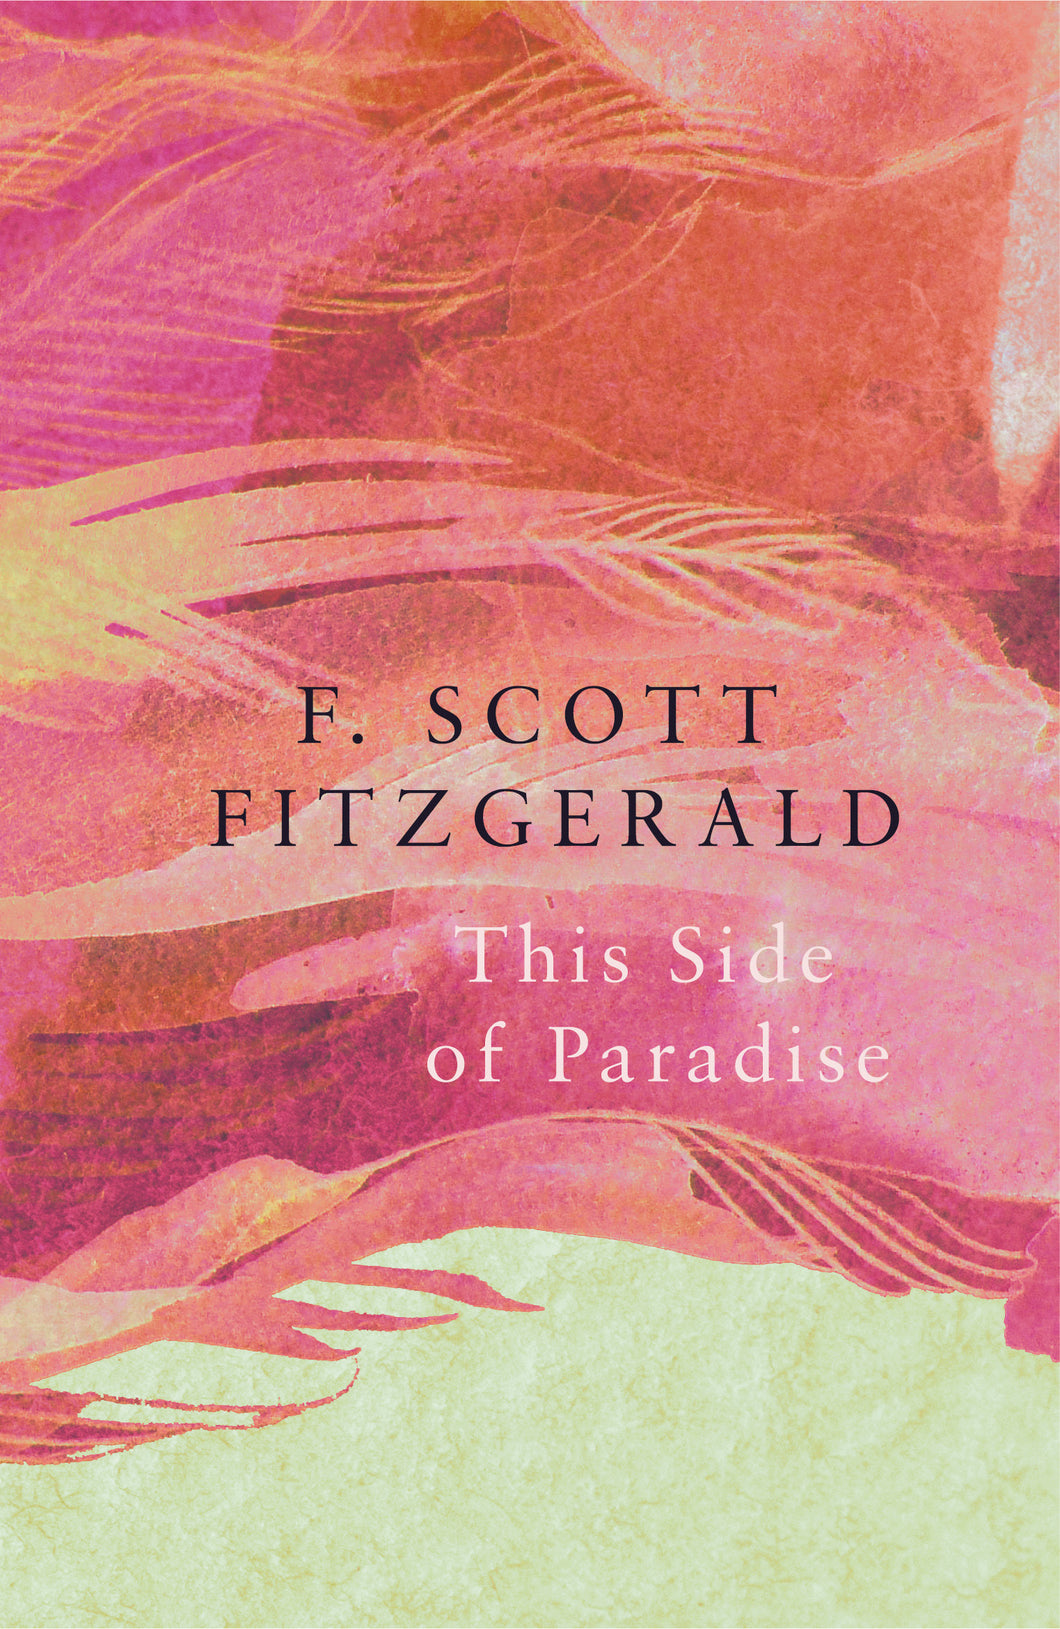 This Side of Paradise (Legend Classics)